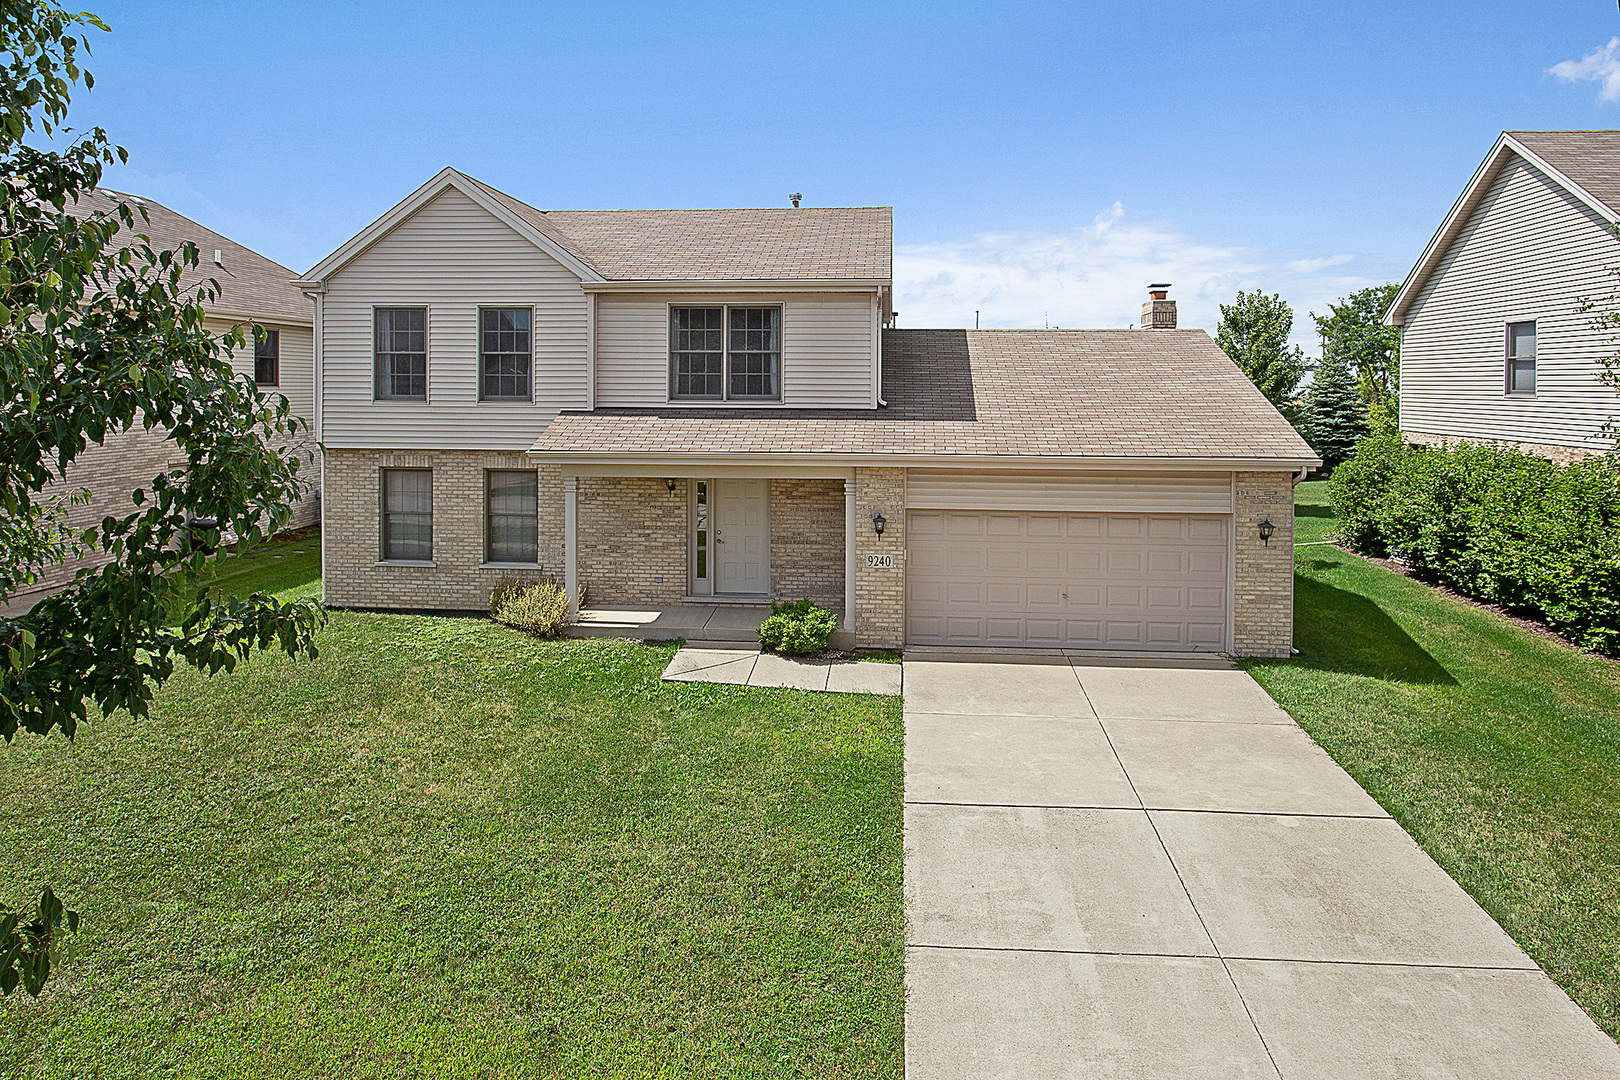 9240 Witham Lane, Woodridge, Illinois